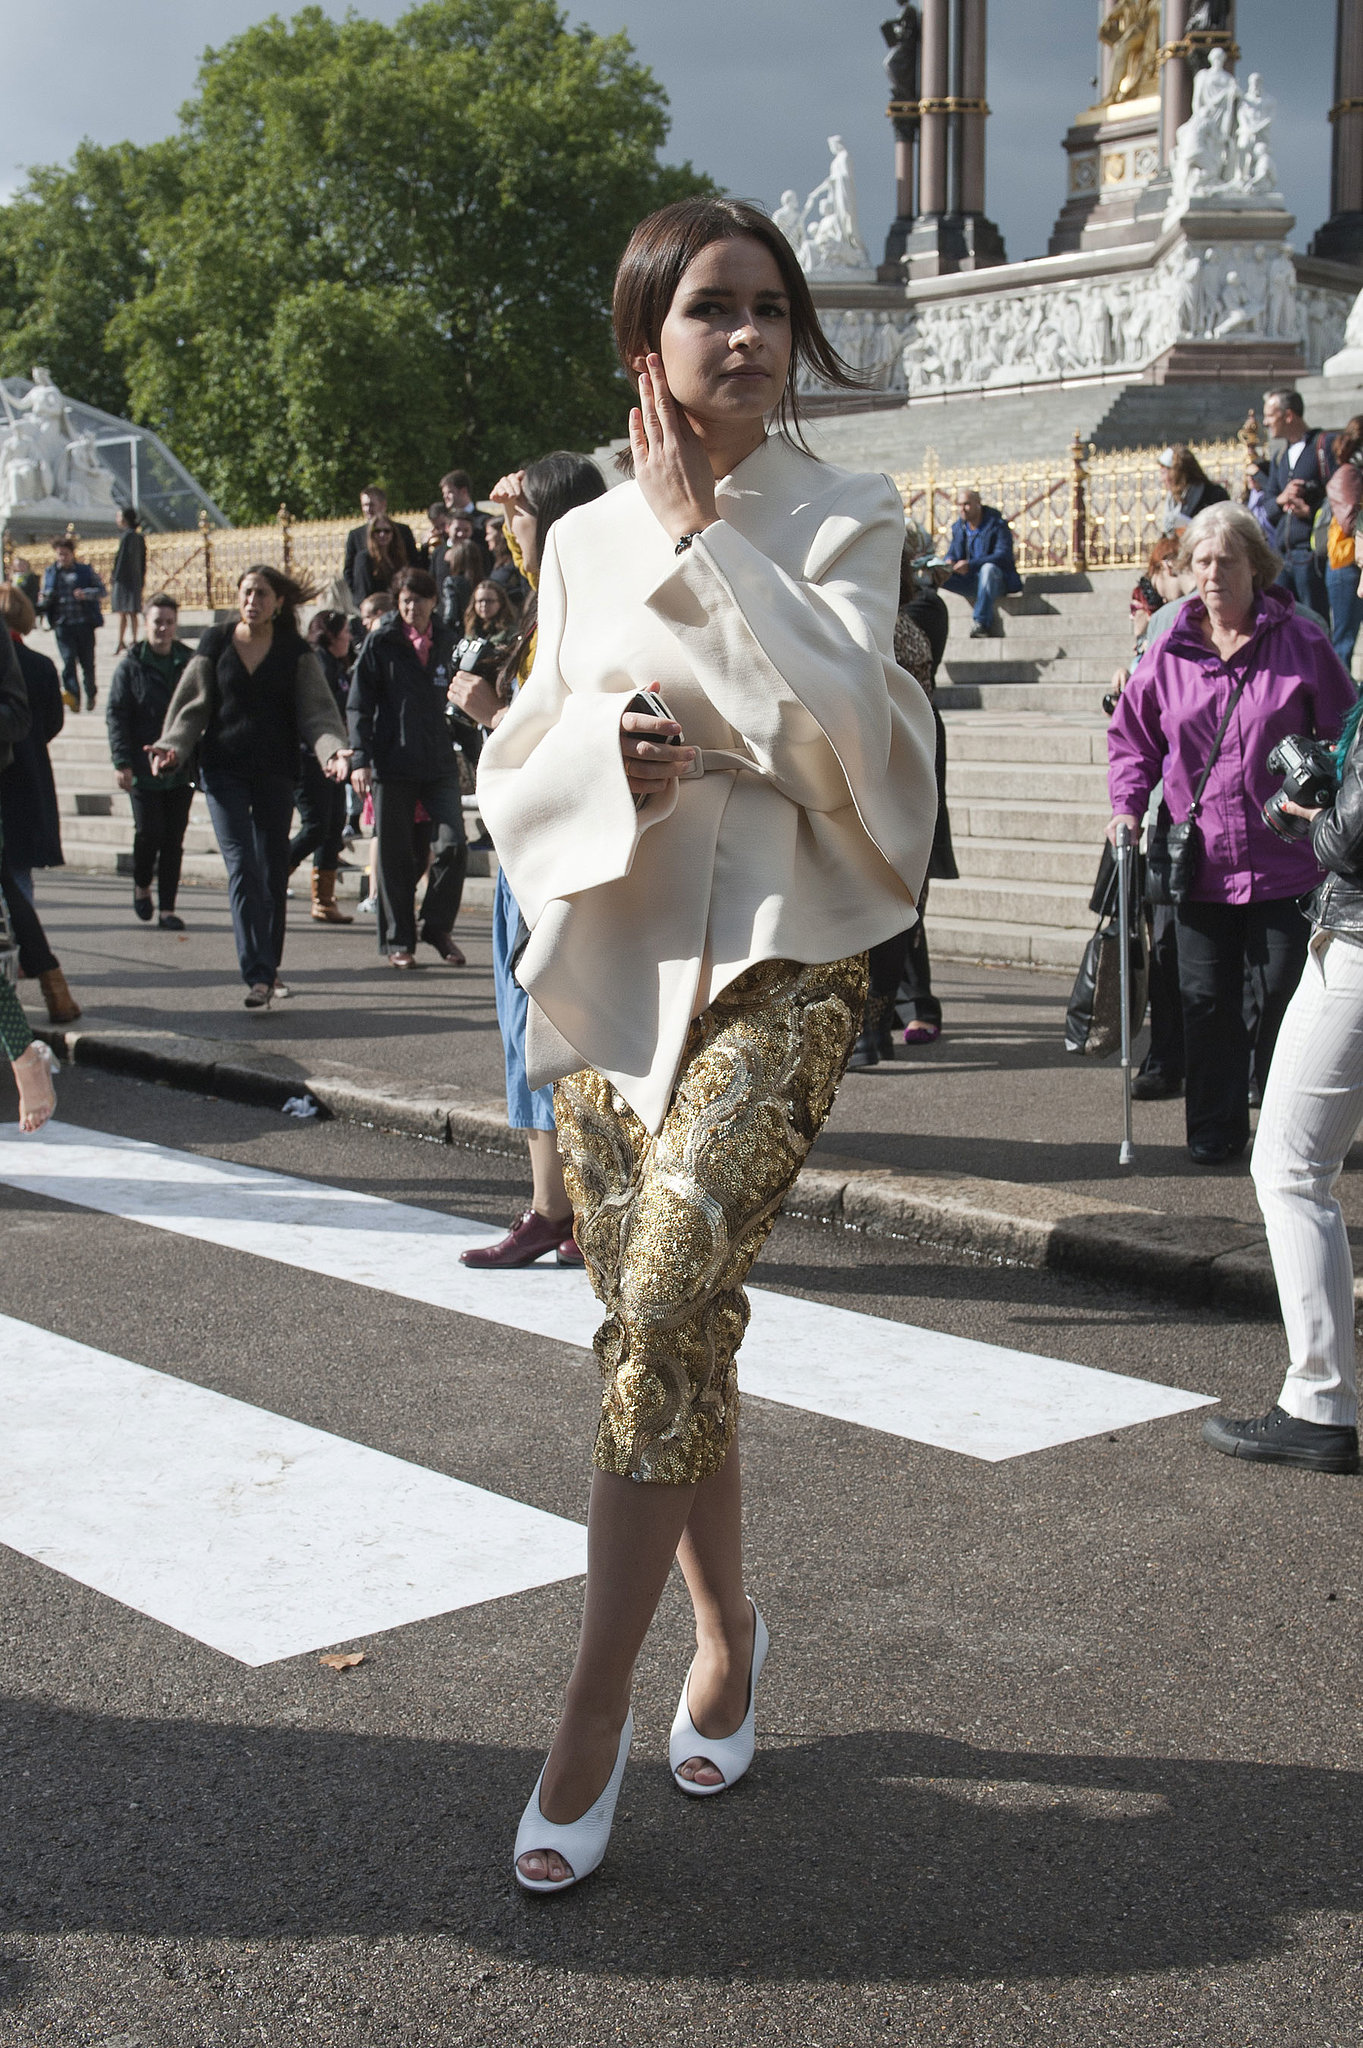 Miroslava Duma gave us a dramatic look on the go.